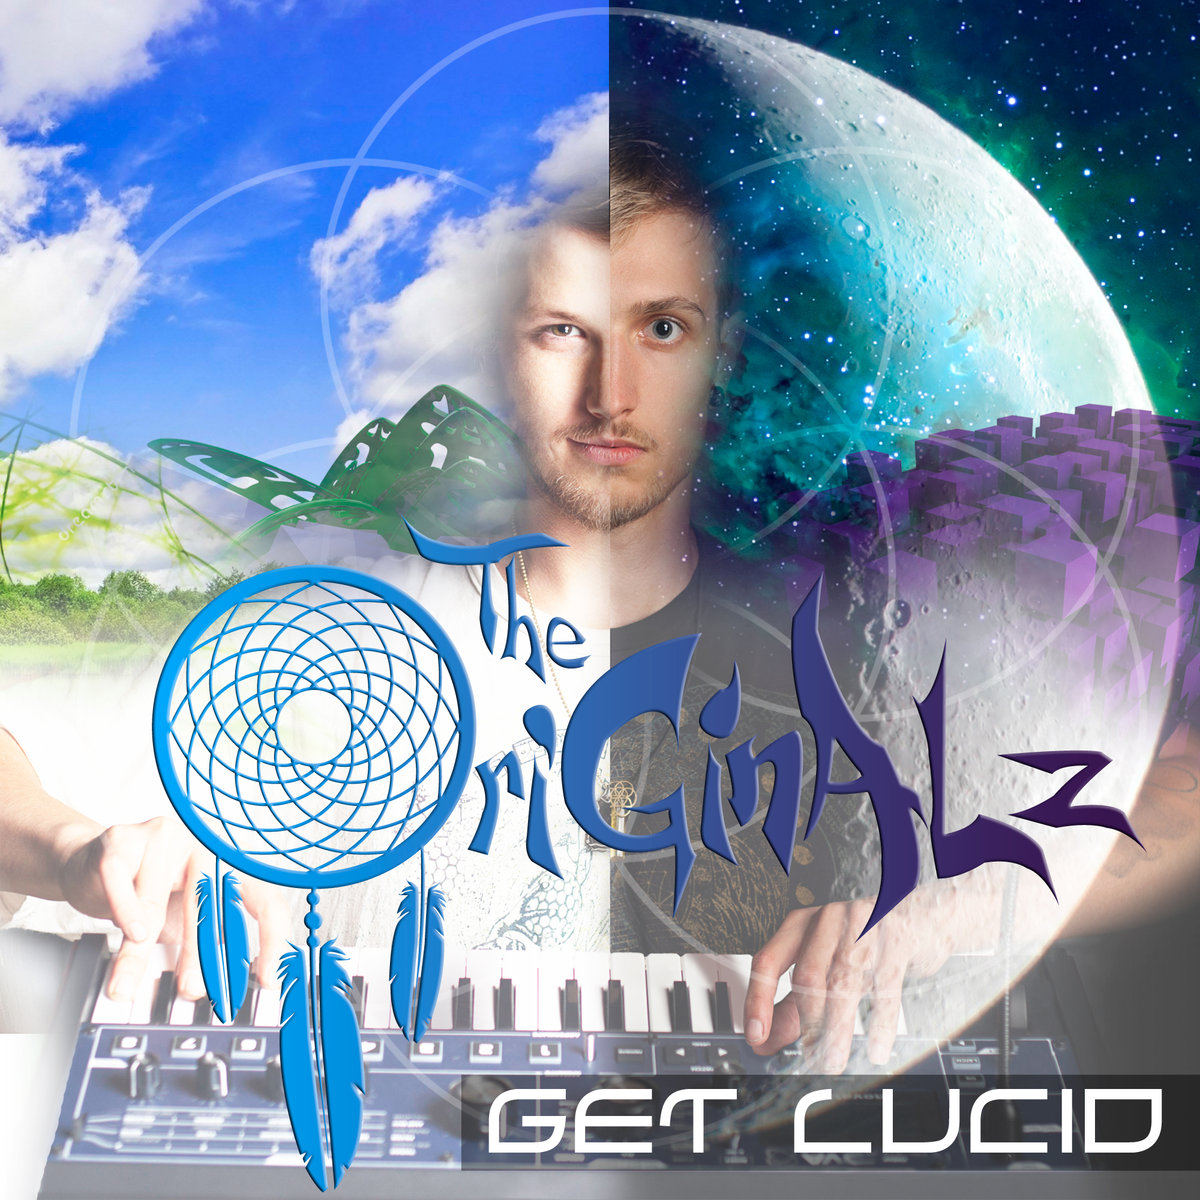 The OriGinALz - Get Lucid @ 'Get Lucid' album (Austin)